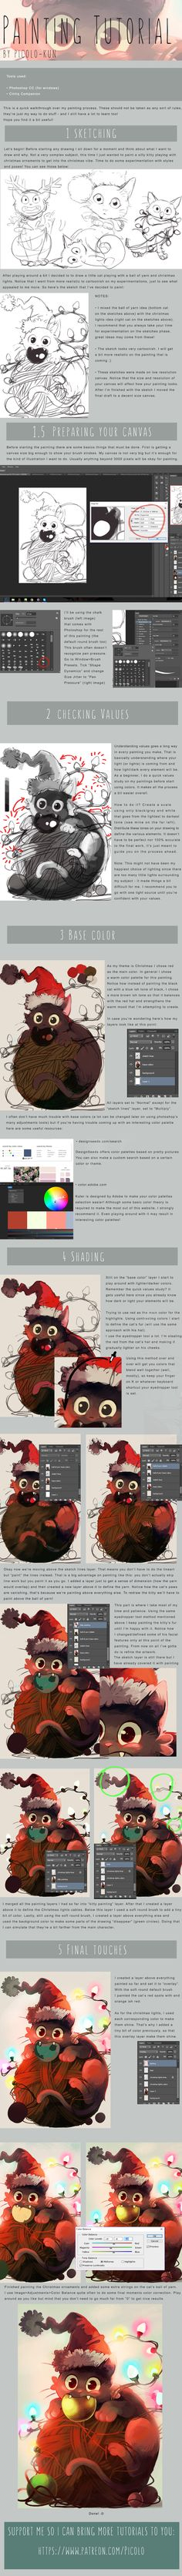 (click to enlarge!!) A long postponed tutorial! Made possible by my patrons, thanks so much for supporting my work This time I did a walkthrough of my digital painting process! It's very simple sin...